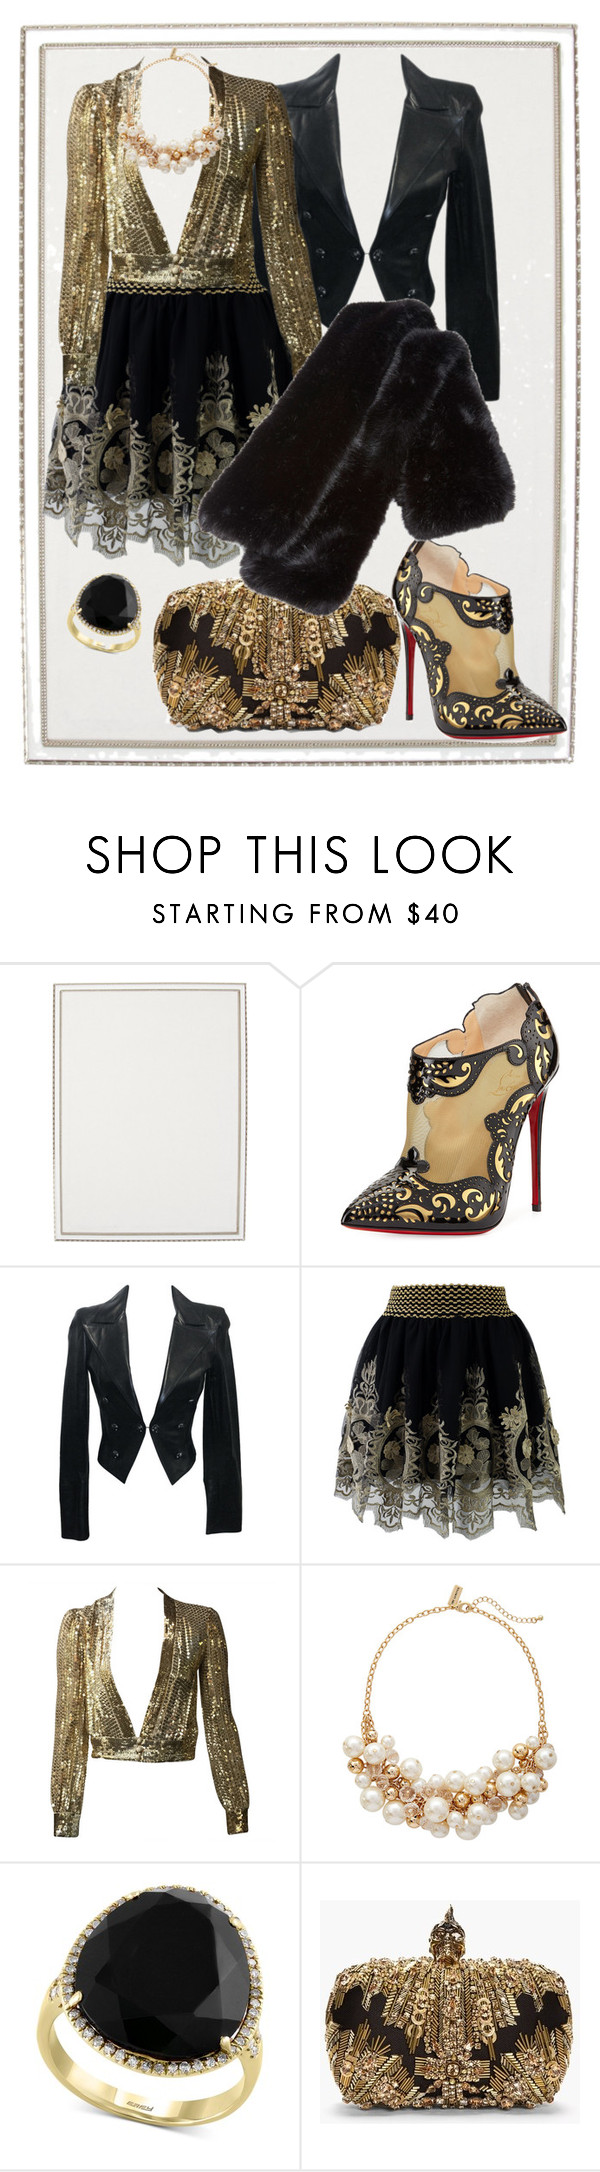 """""""Black elegant style"""" by sirps ❤ liked on Polyvore featuring Haffke, Christian Louboutin, Chanel, Chicwish, The Limited, Effy Jewelry, Alexander McQueen and Carven"""